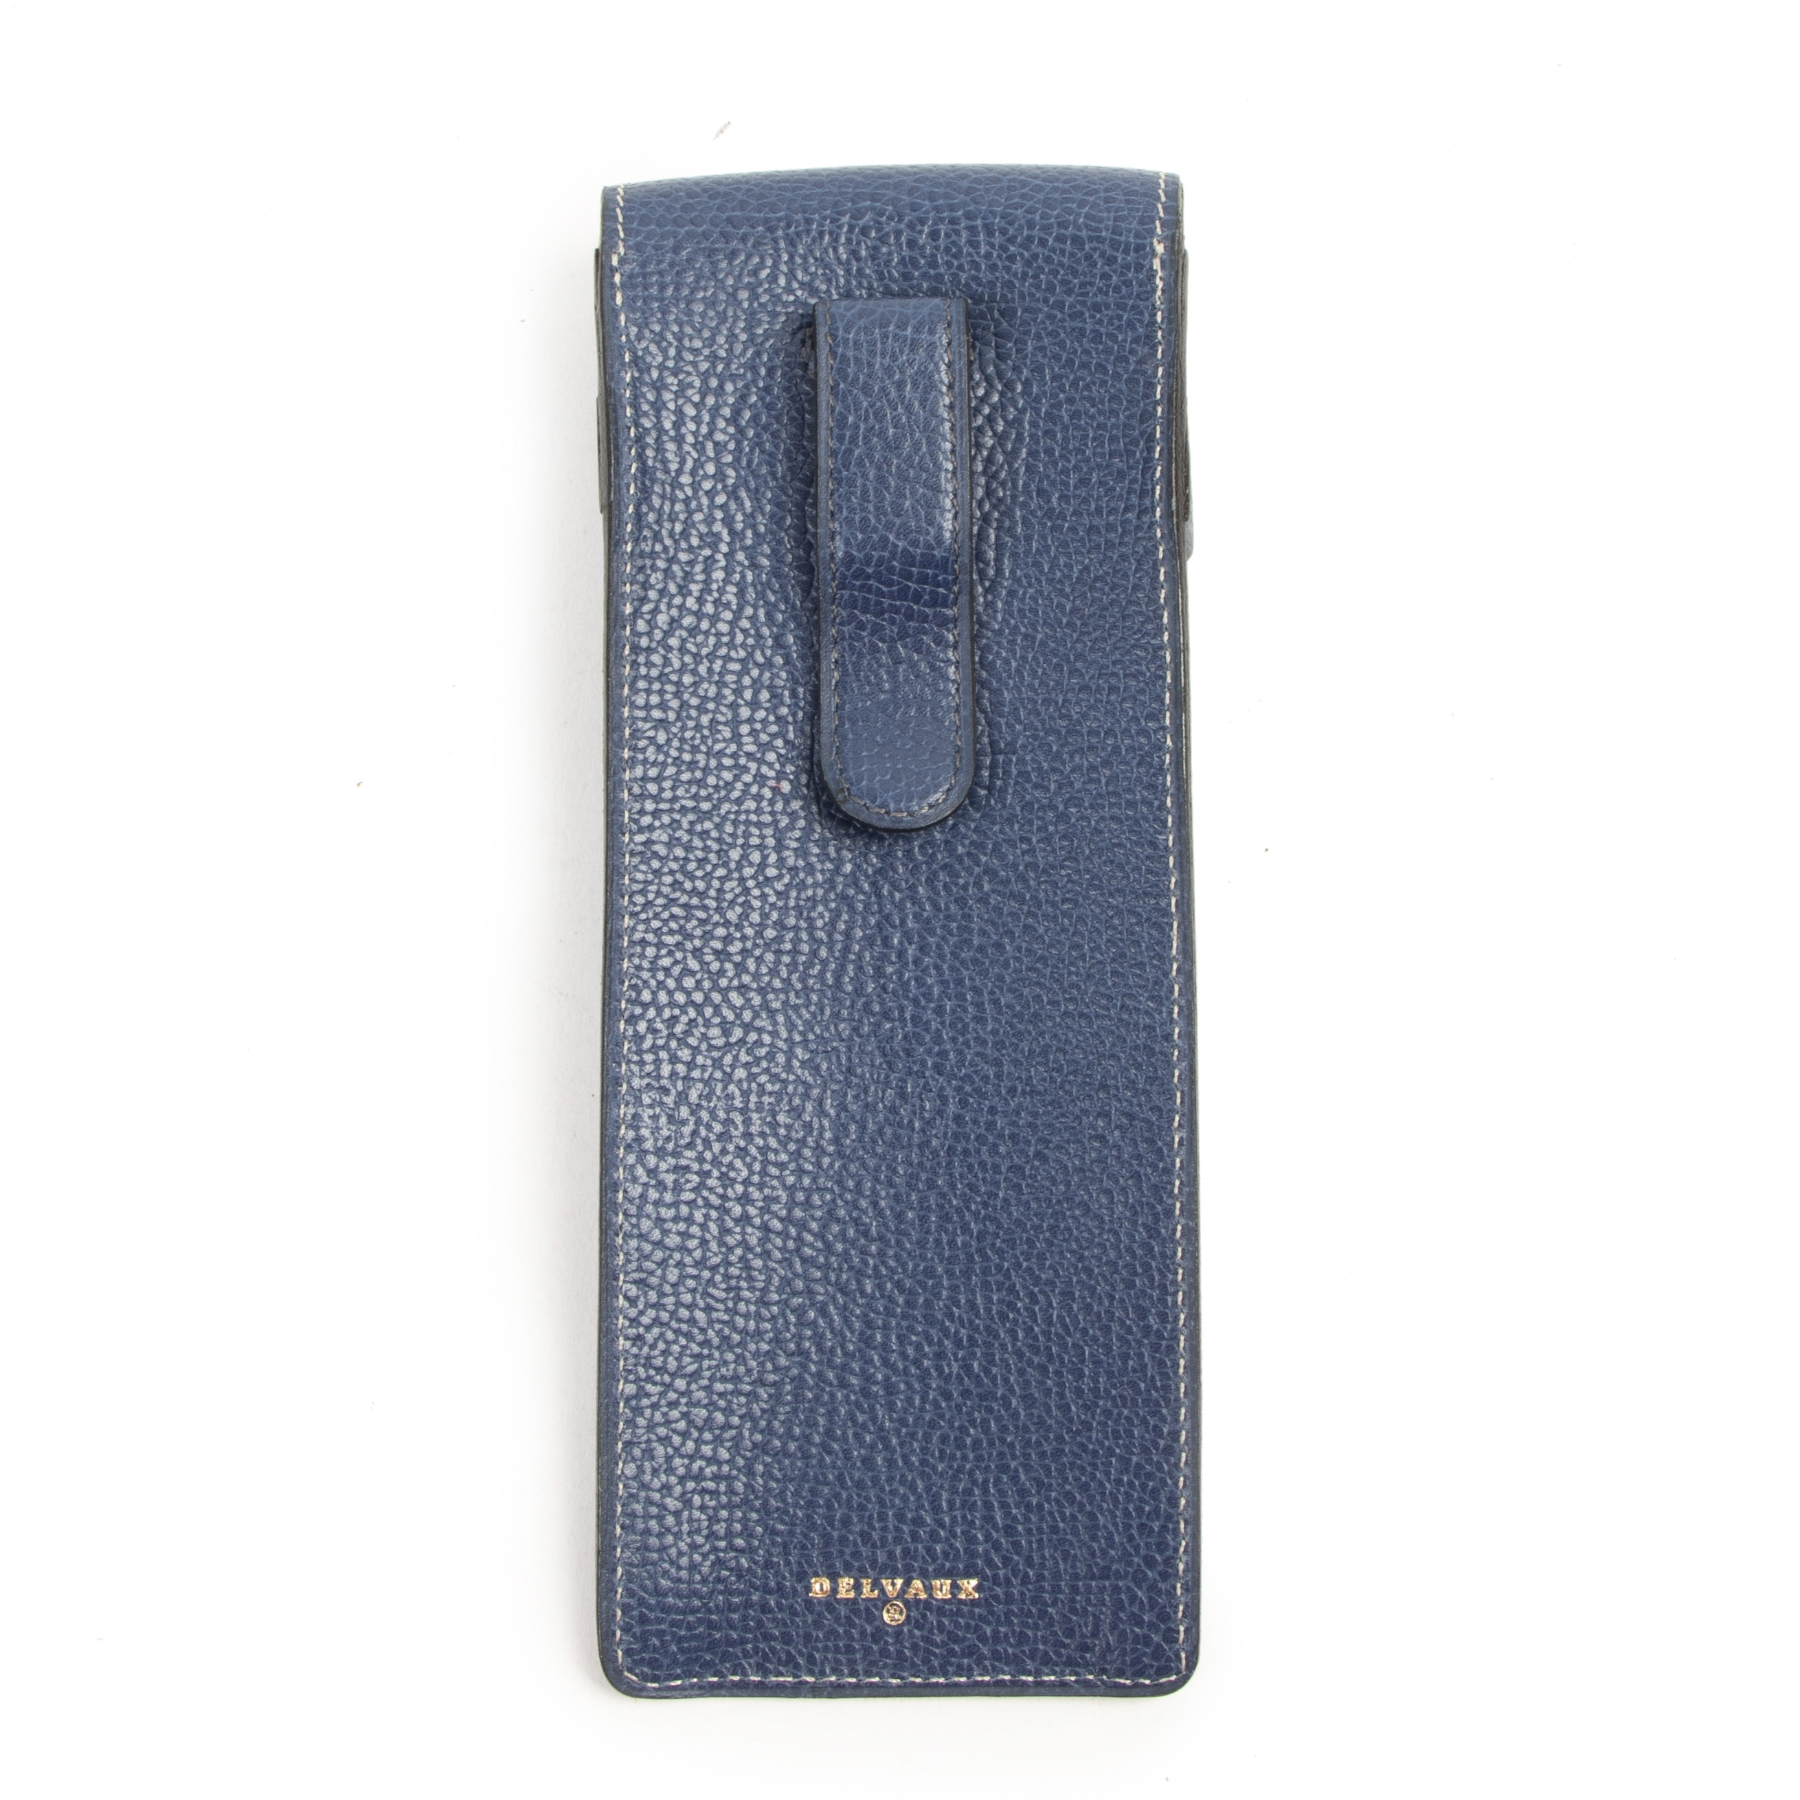 Authentieke tweedehands vintage Delvaux Blue Leather Pencil Case koop online webshop LabelLOV